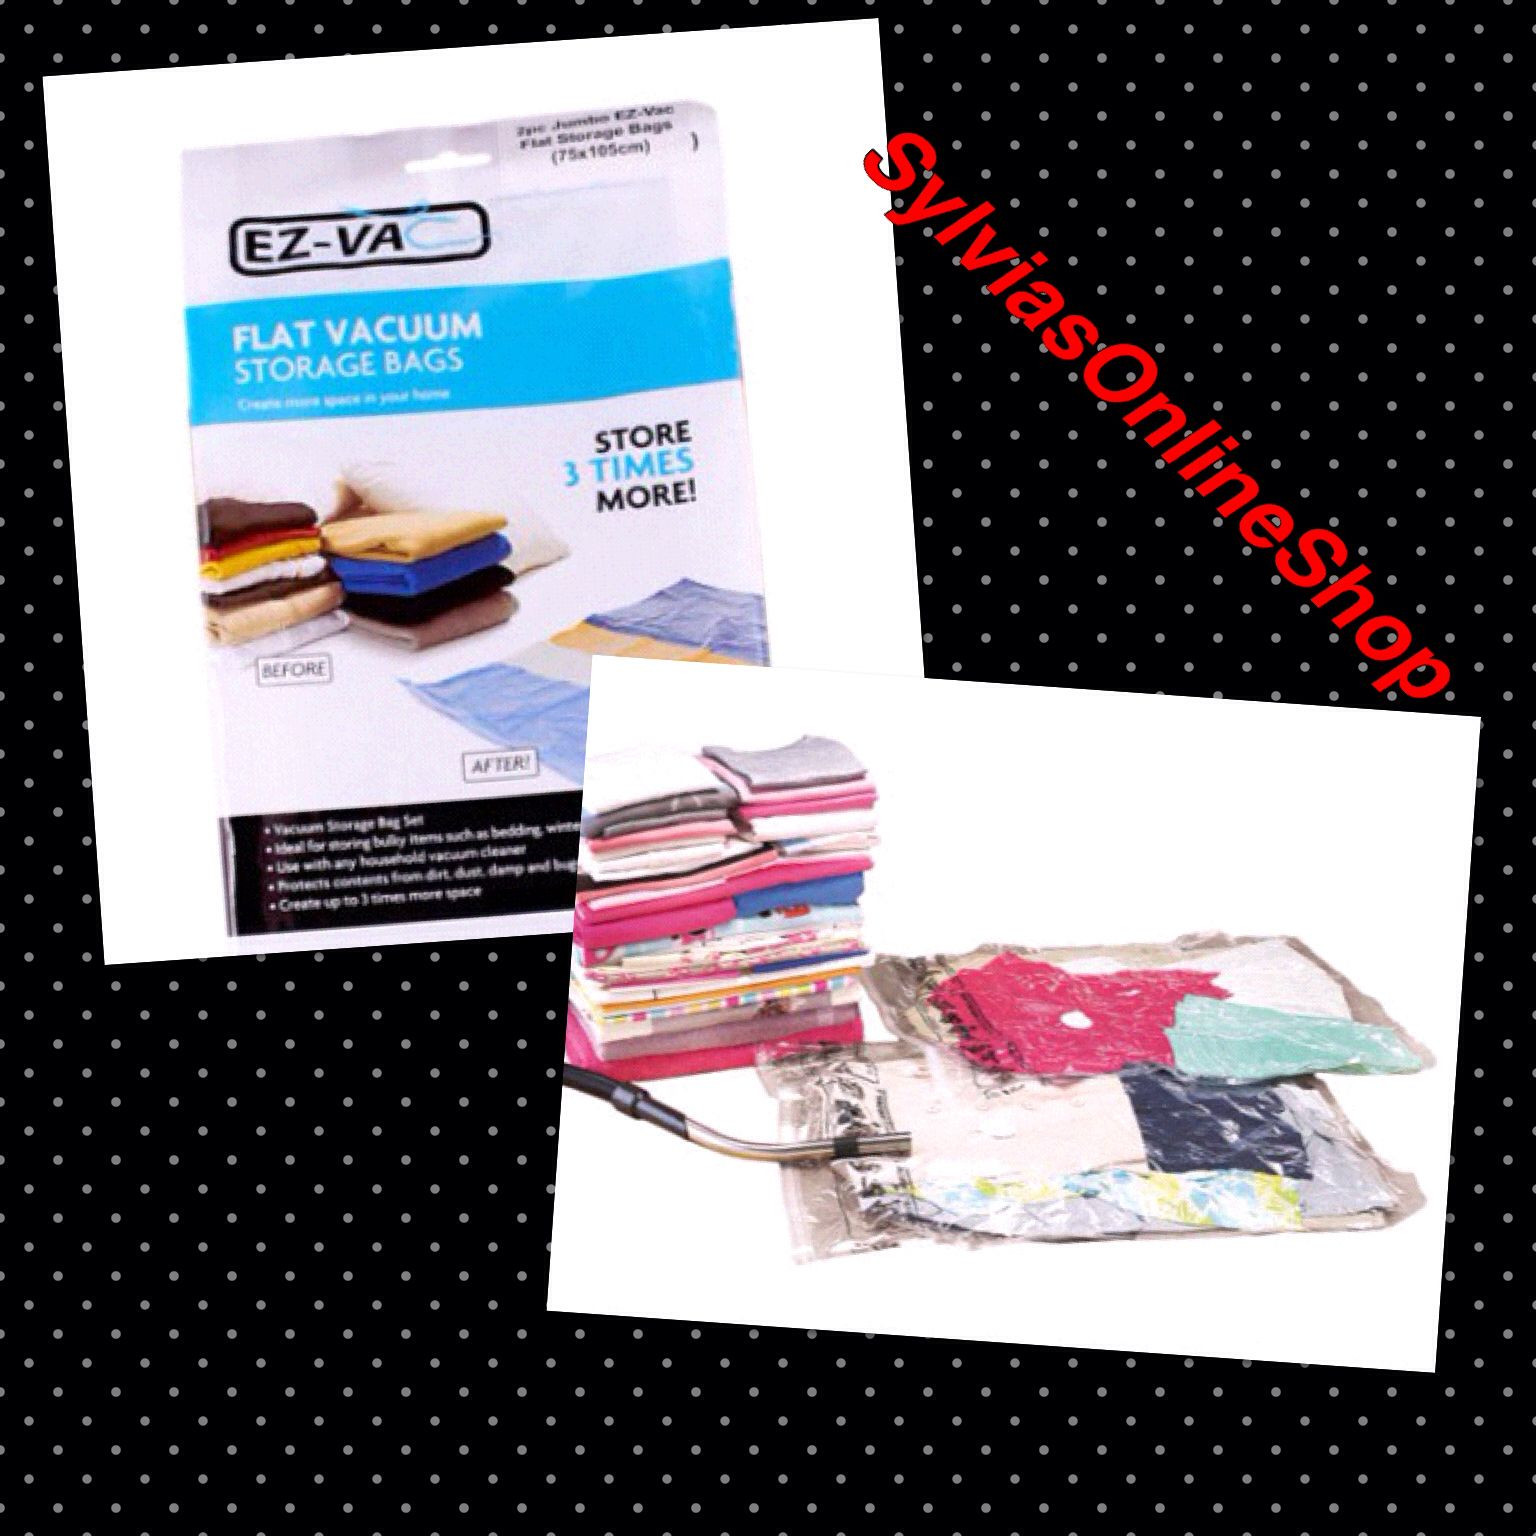 SET OF 2 FLAT VACUUM BAGS  Large - H80 x W50 cm...£8 Jumbo - H105 x W75cm...£13  Ideal for storing bulky items such as bedding, out of season clothes and soft toys. Creates up to 3 times more space.  When contents are needed, just open and the contents will quickly return to their original state.  Requires the use of a vacuum cleaner.  Comment or message me to order. Thanks ☺️